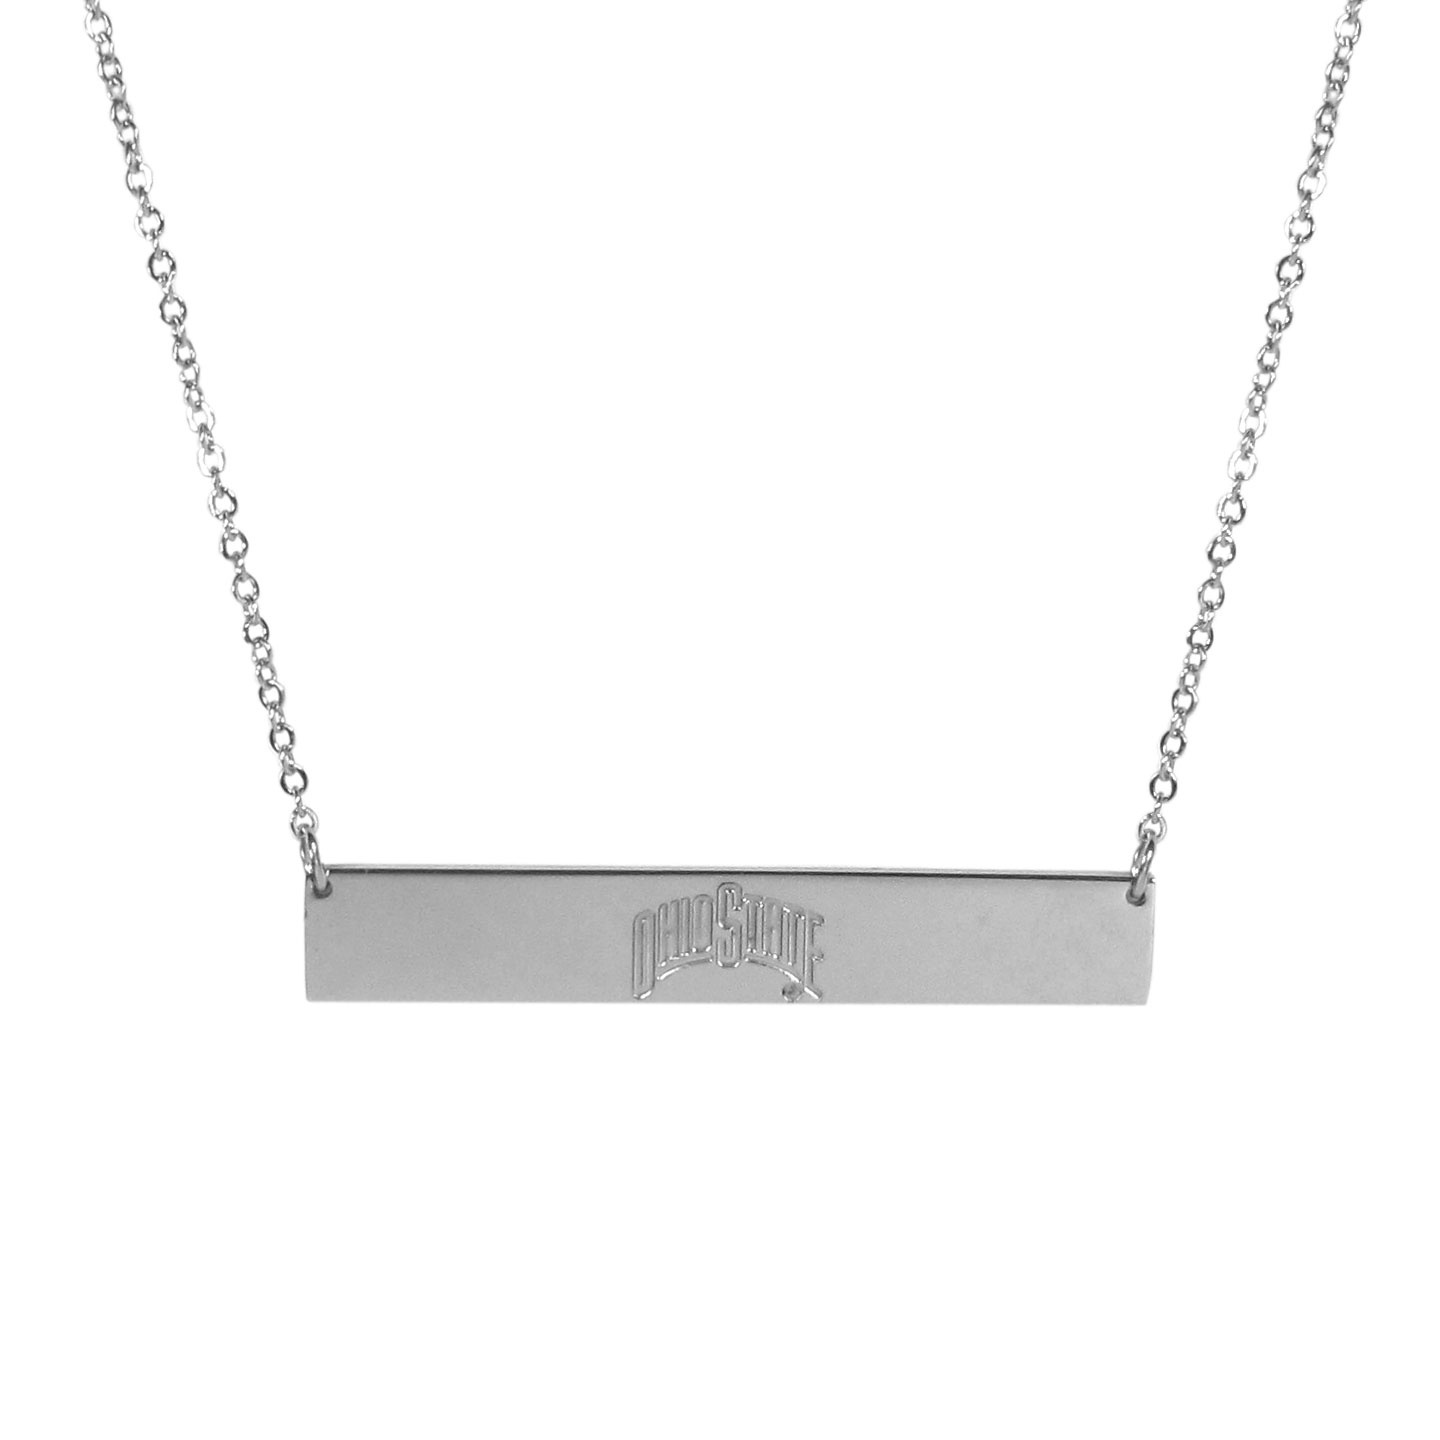 Ohio St. Buckeyes Bar Necklace - Simply beautiful Ohio St. Buckeyes bar necklace on a 20 inch link chain with 2 inch adjustable extender. This light-weight bar necklace has a stylish silver colored finish with the team name expertly etched on the 1.5 inch bar. Every female  fan will enjoy this contempory fashion accessory.